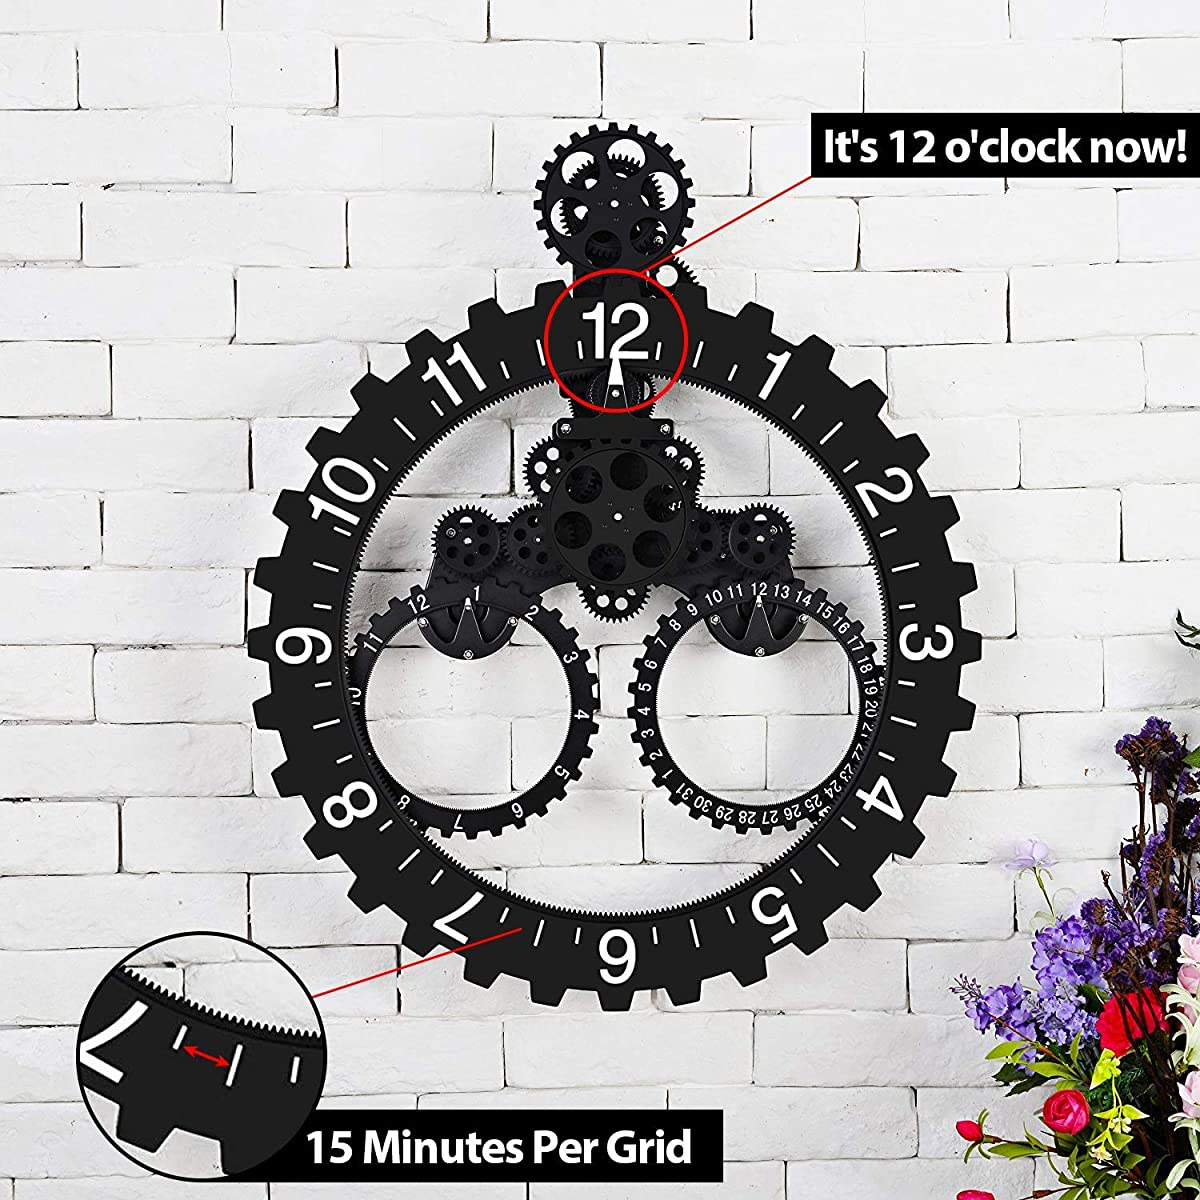 "SevenUp Gear Clock Wall-Premium Plastic and Metal Parts Material, Best 3D Moving Gear Clock Wall, 26"" x 22"", A Fine Artwork, Perfect for Living Room, Reading Room, Restaurant, Office Decor (Black)"